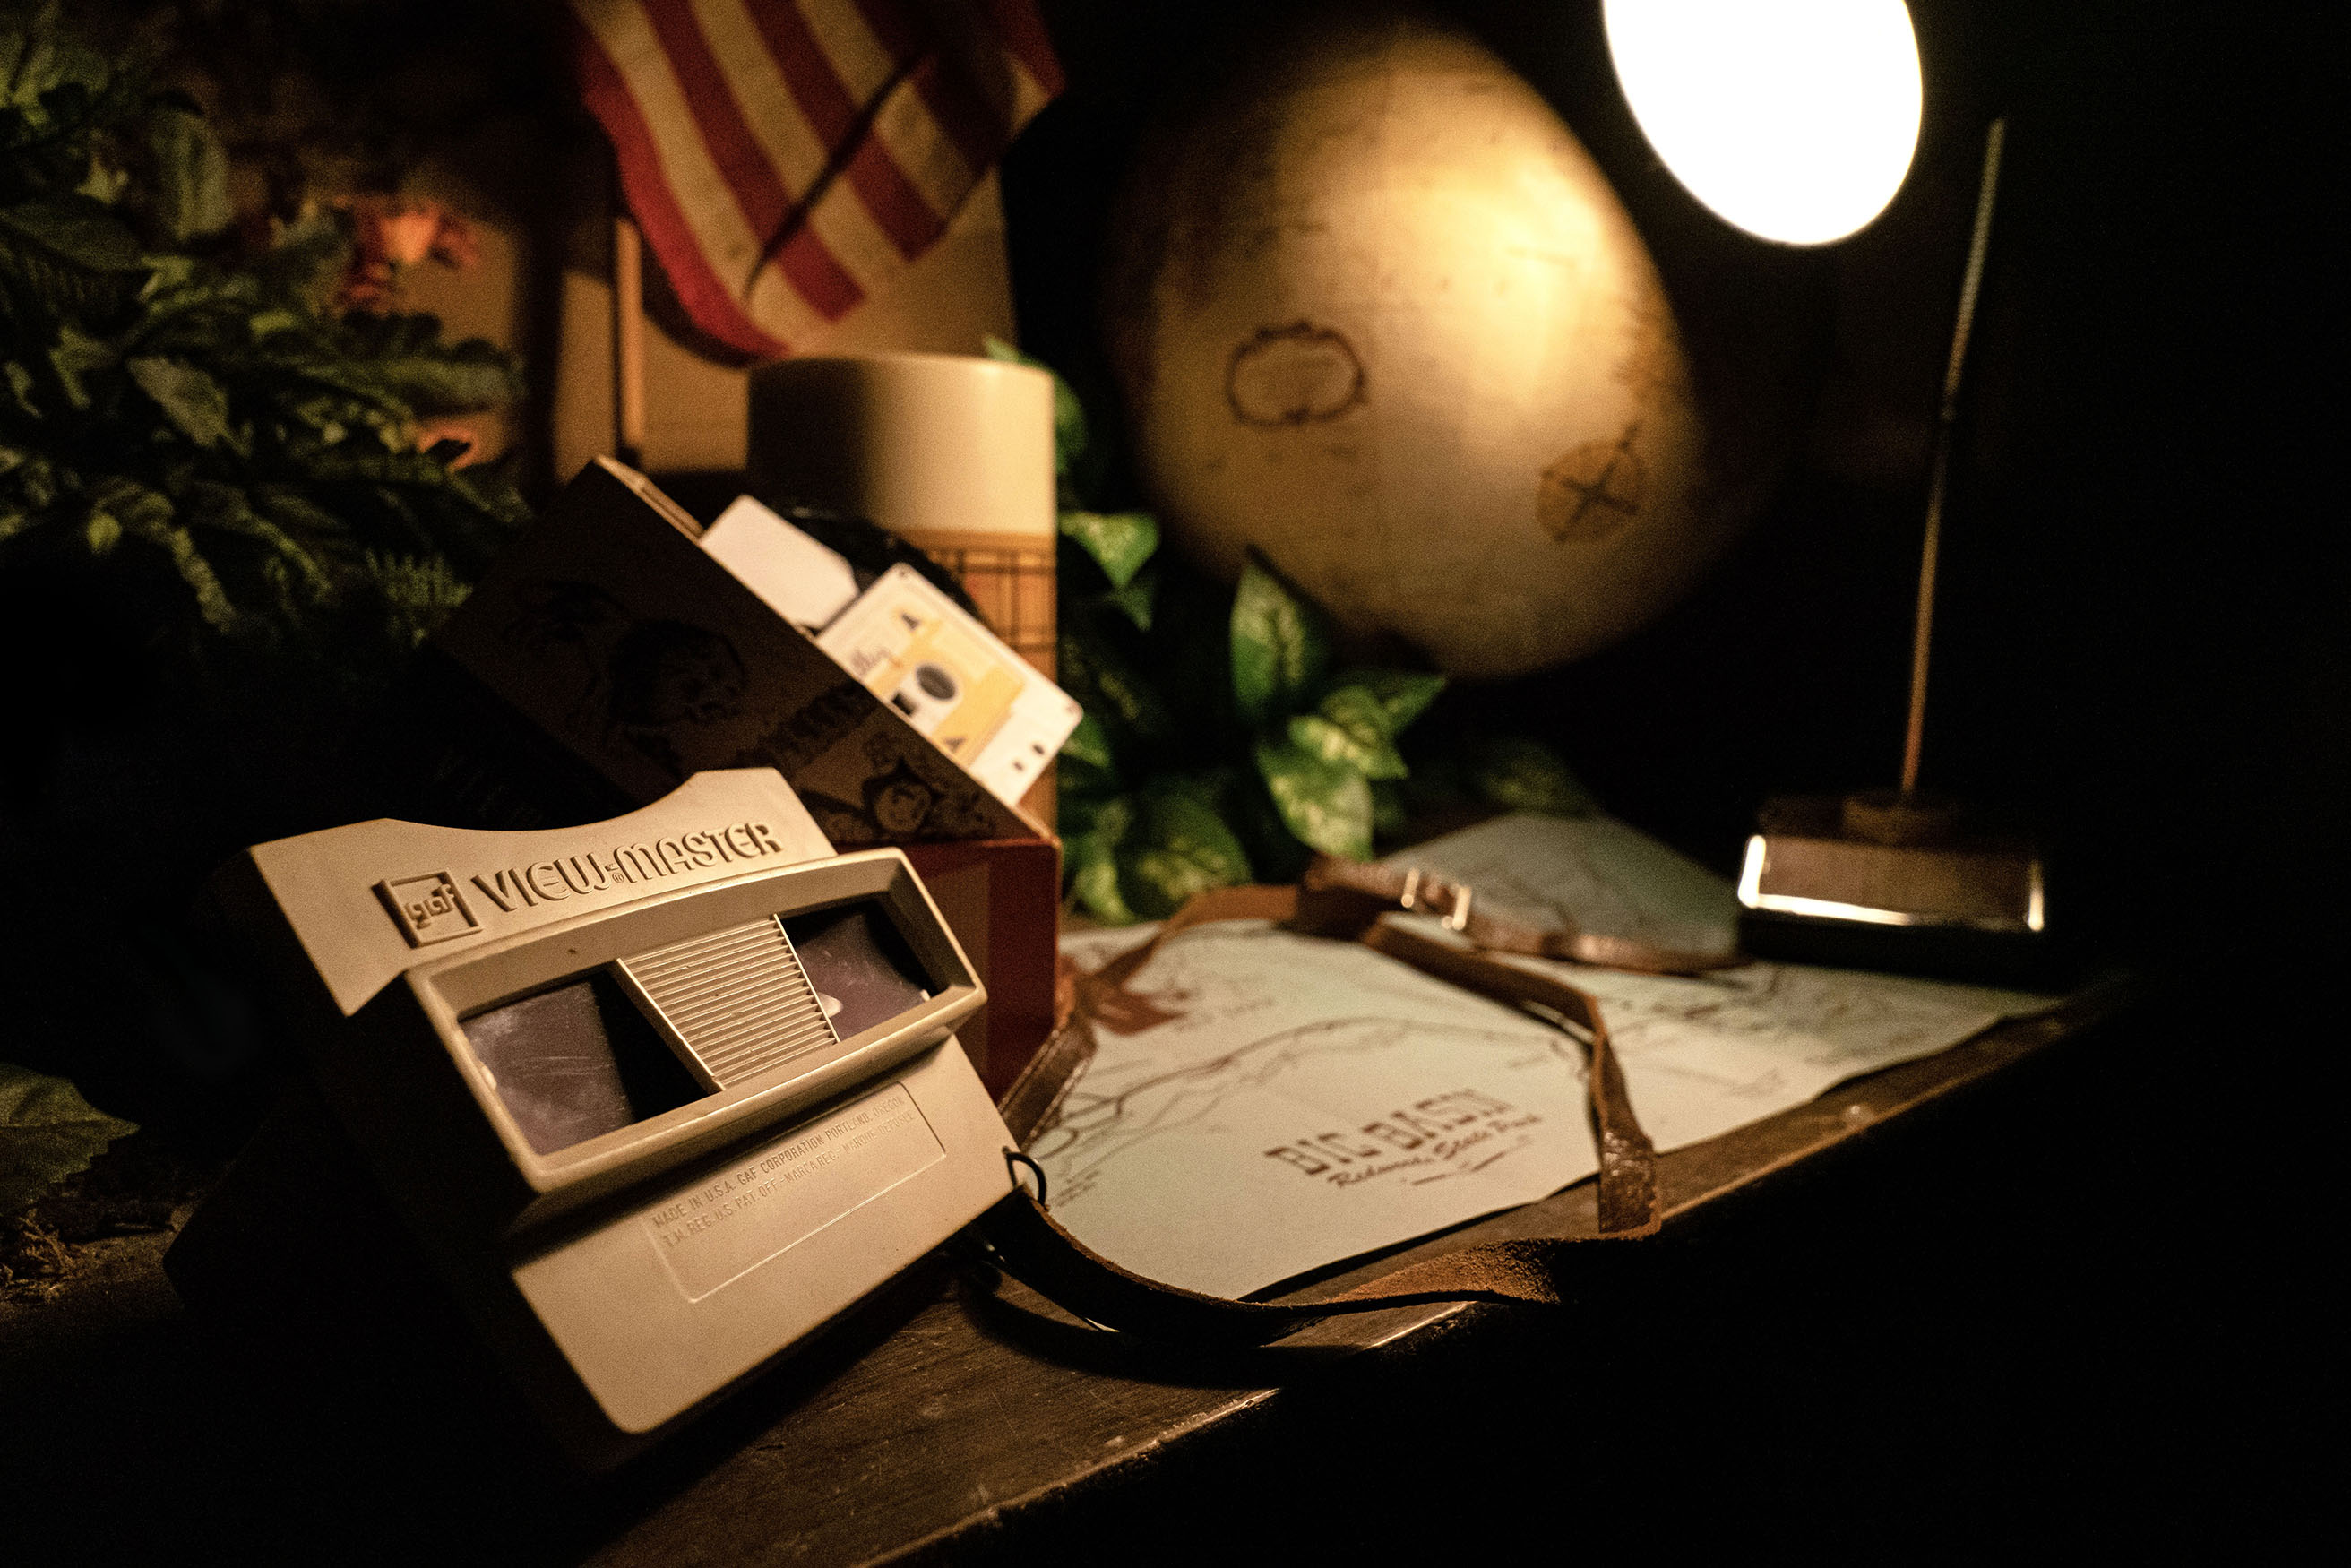 scout expedition co the nest immersive theater escape room